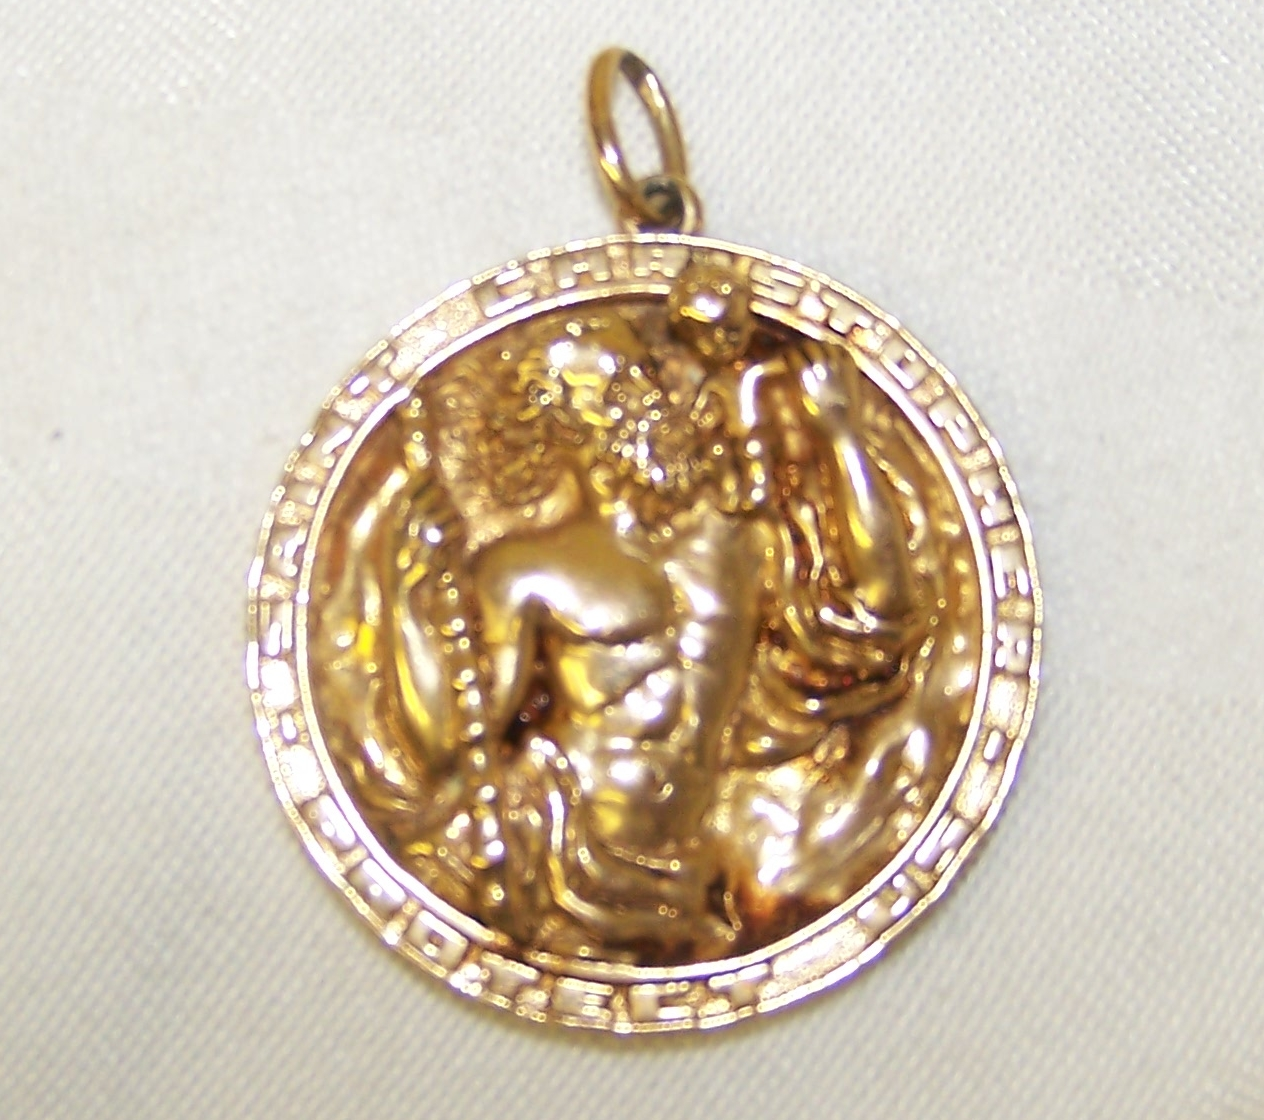 14 yellow gold st christopher pendant pendant weighs 407 grams 14 yellow gold st christopher pendant pendant weighs 407 grams loading zoom mozeypictures Images